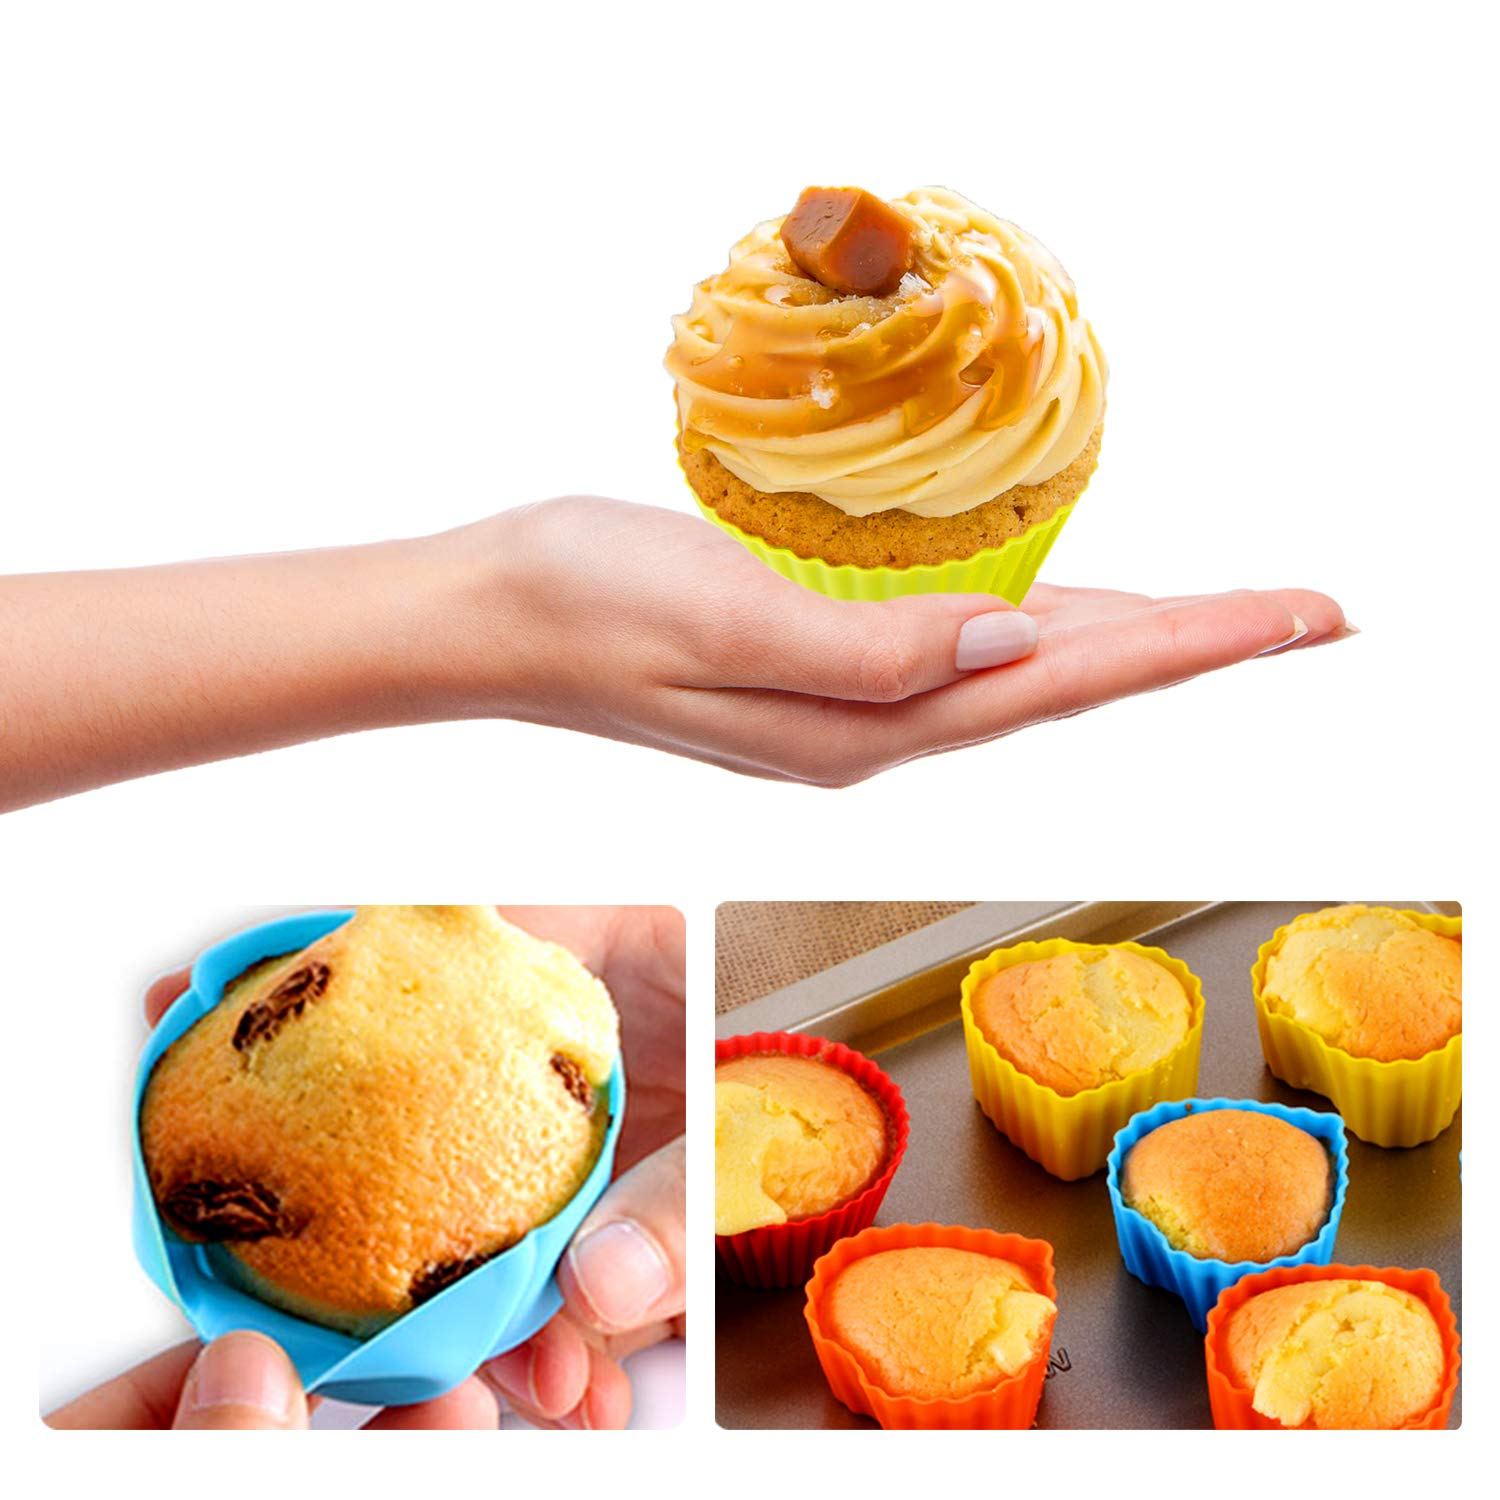 WARMWIND Silicone Muffin Cups, Food Grade Cupcake Baking Mold, 36-Pack Cake Cup Sets, Reusable Baking Cups, Non-Stick Cupcake Liners, Dishwasher Safe by WARMWIND (Image #3)